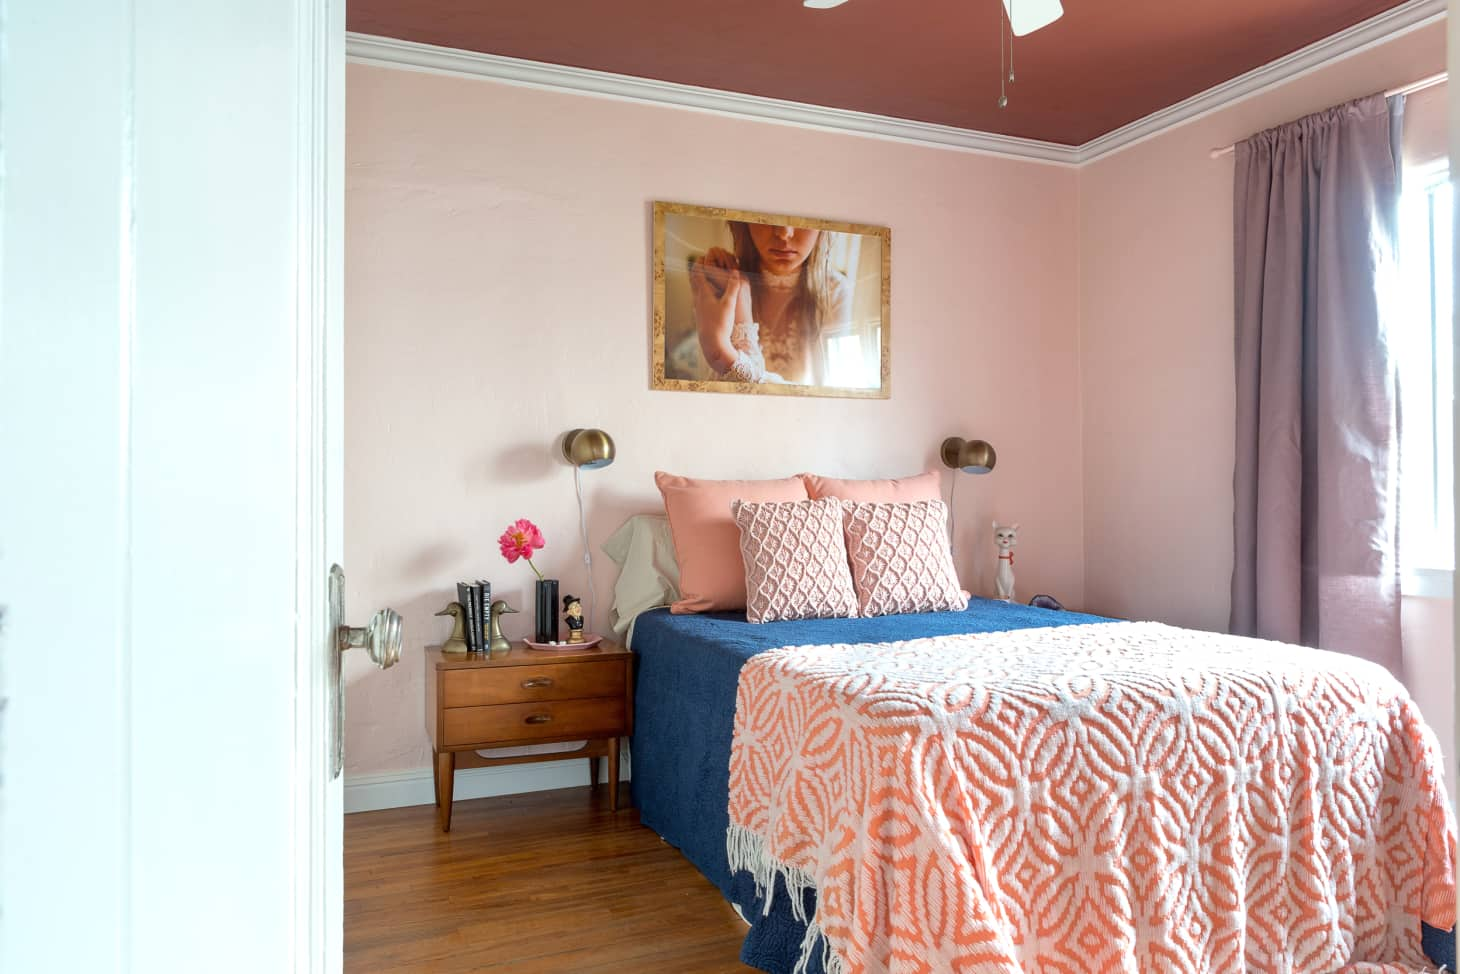 Creative Bedroom Painting Ideas and Color Schemes | Apartment Therapy